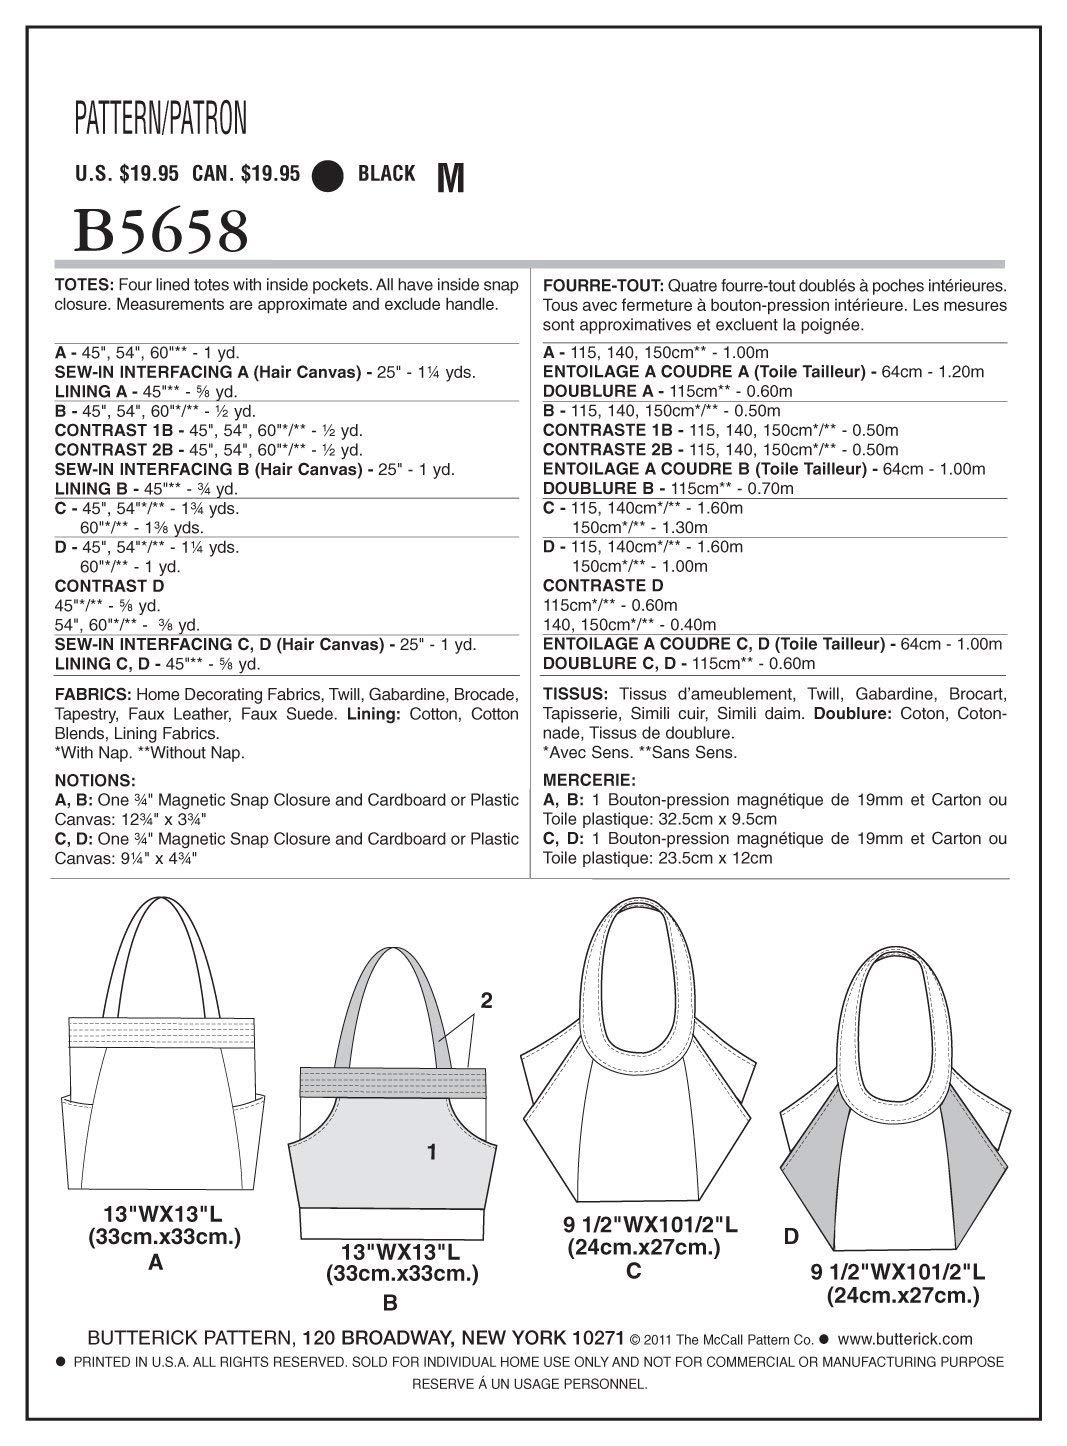 Butterick 5658 Sewing Pattern to MAKE Four Lined Tote Bags with Inside Pockets